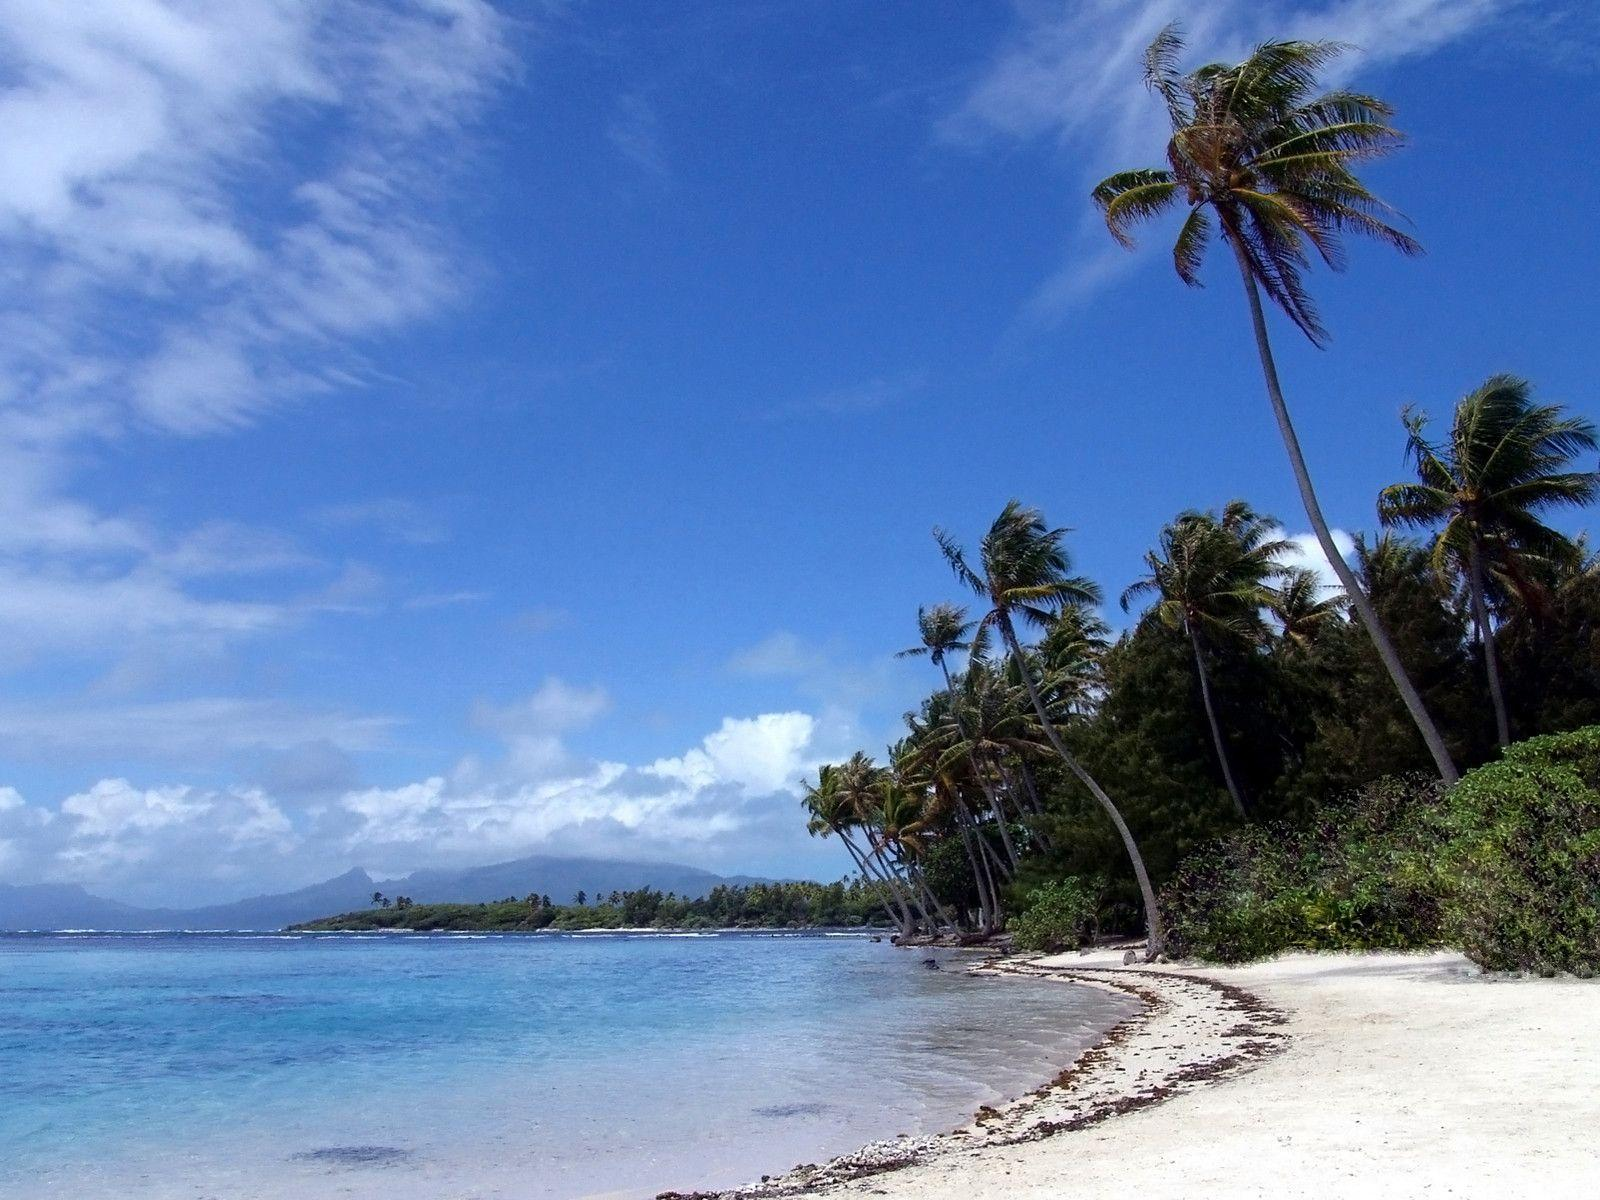 tropical island backgrounds - photo #30